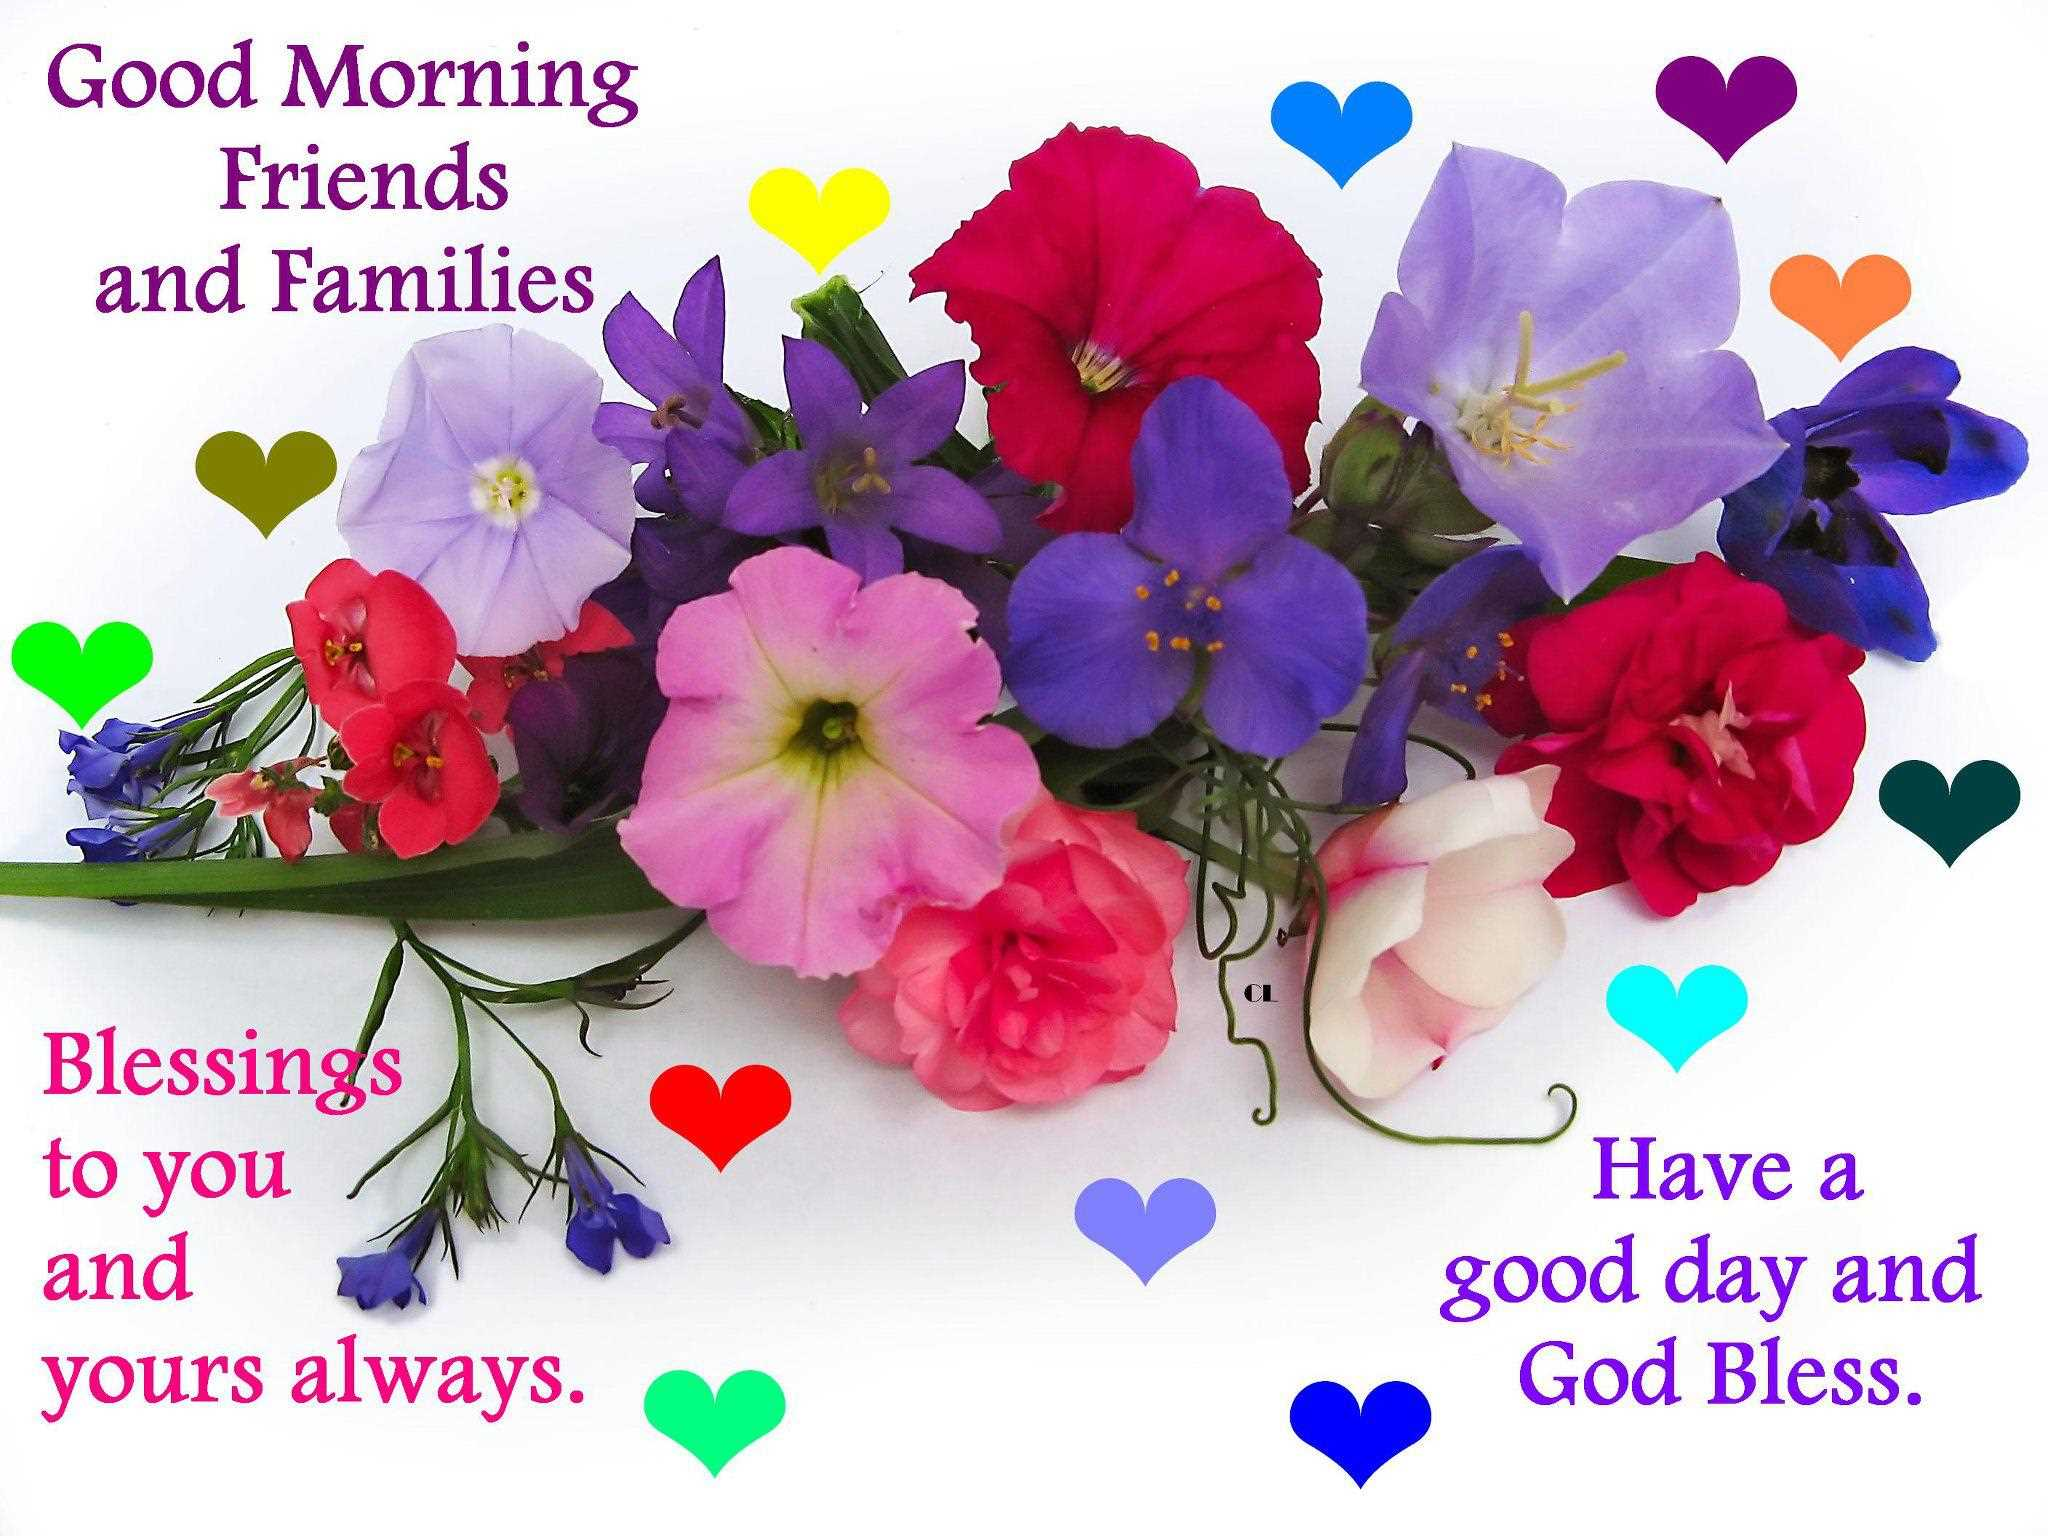 Good Morning Friends Wallpapers For Facebook - Wallpaper Cave